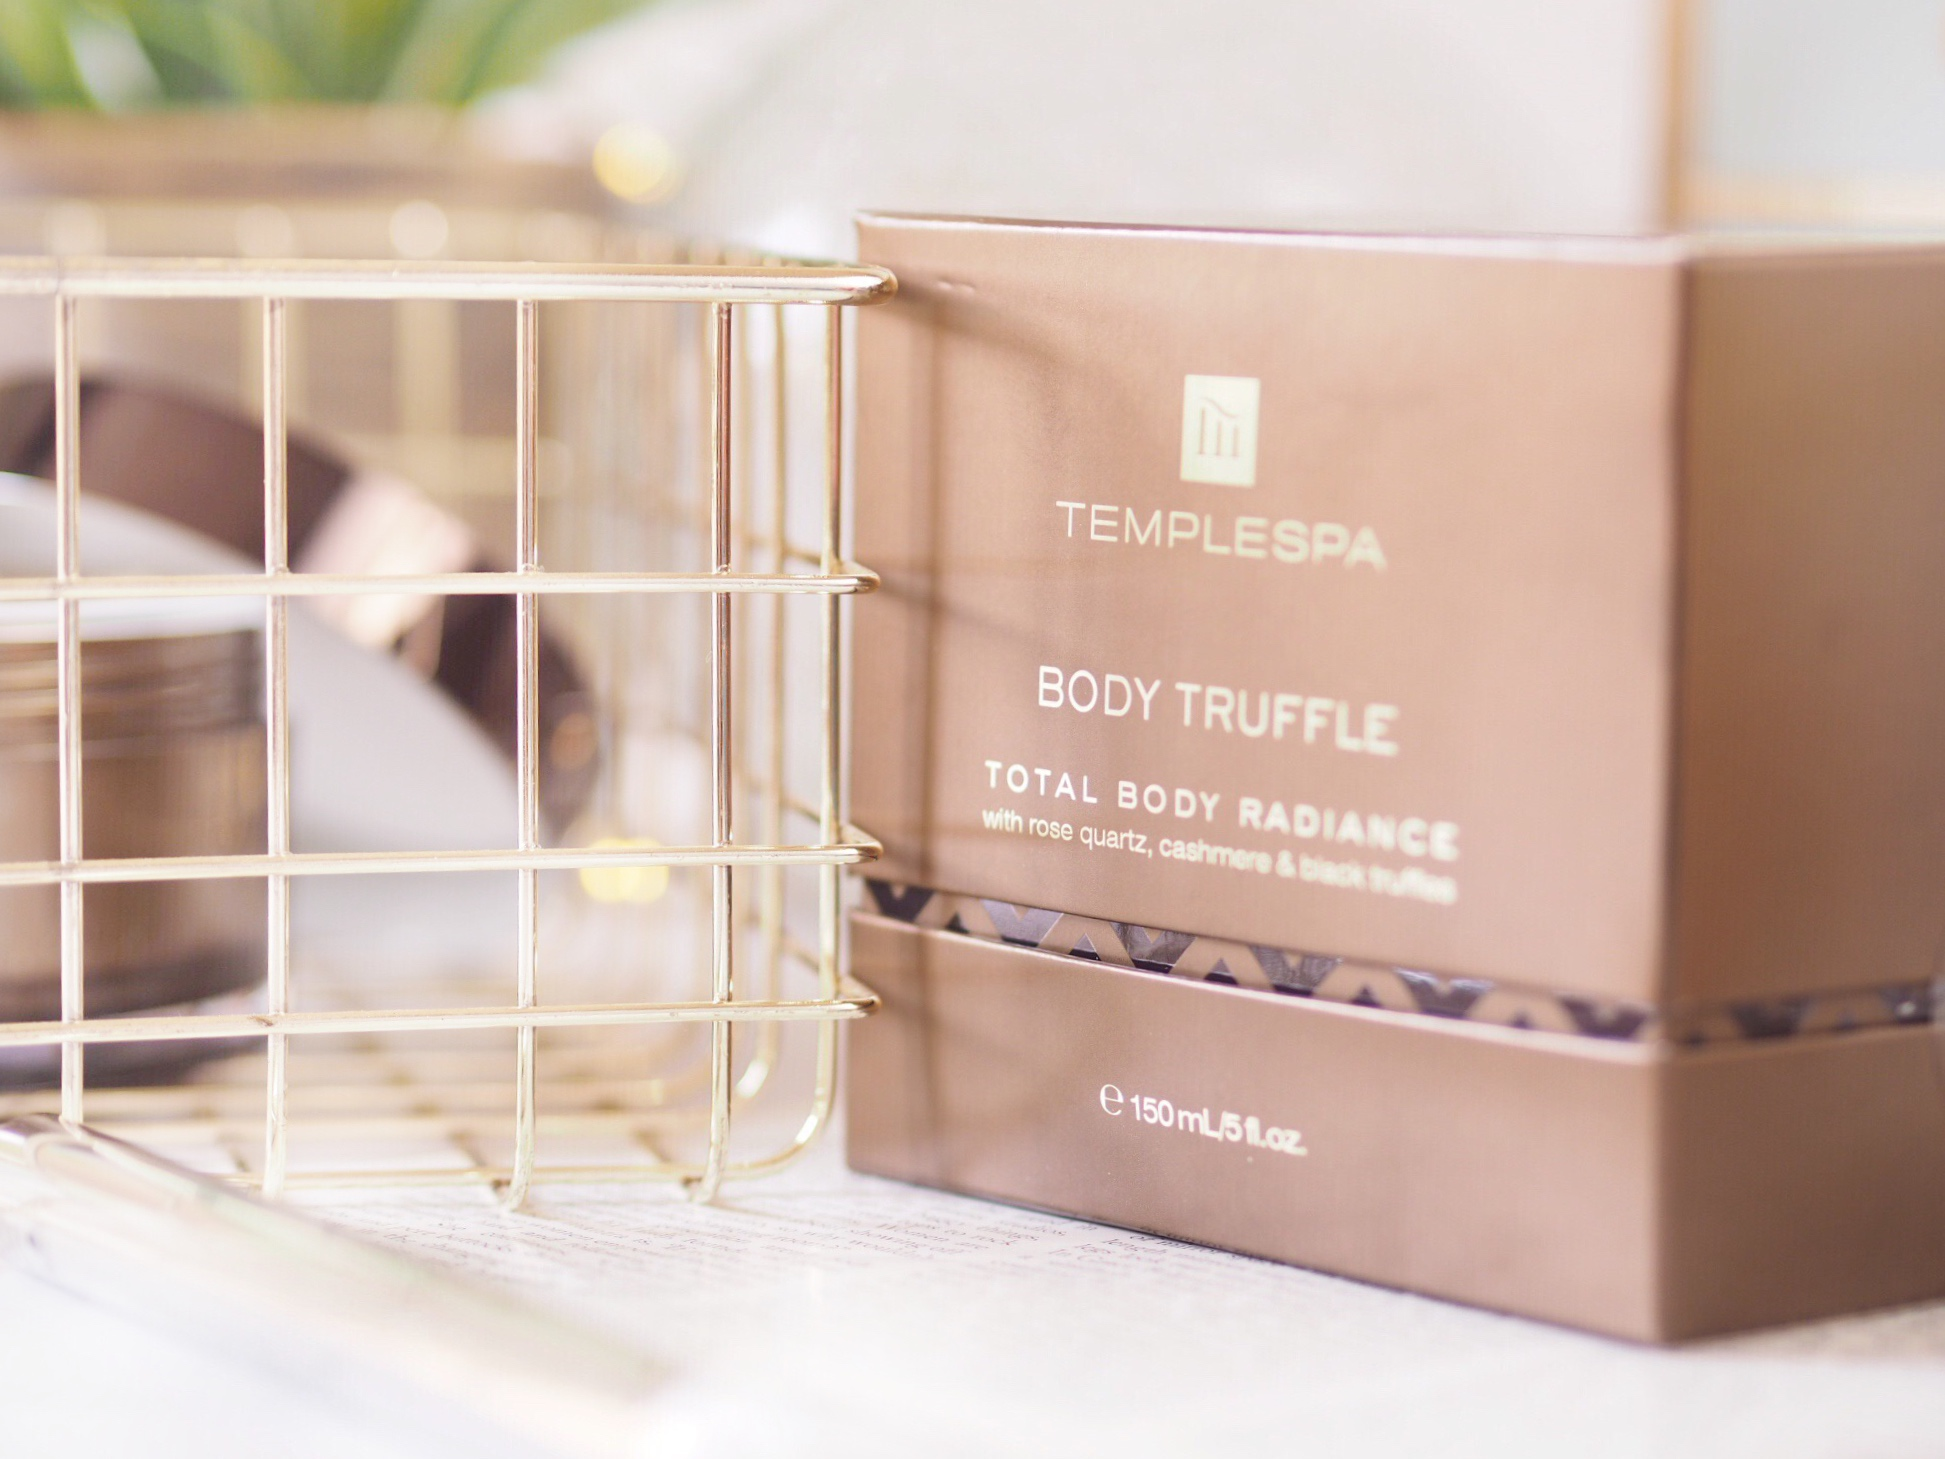 Temple Spa Body Truffle Review